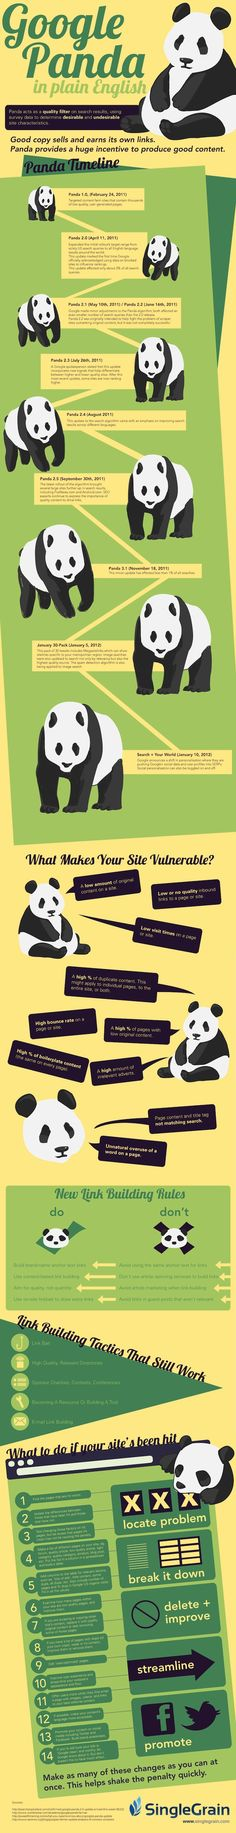 Google Panda in Plain English